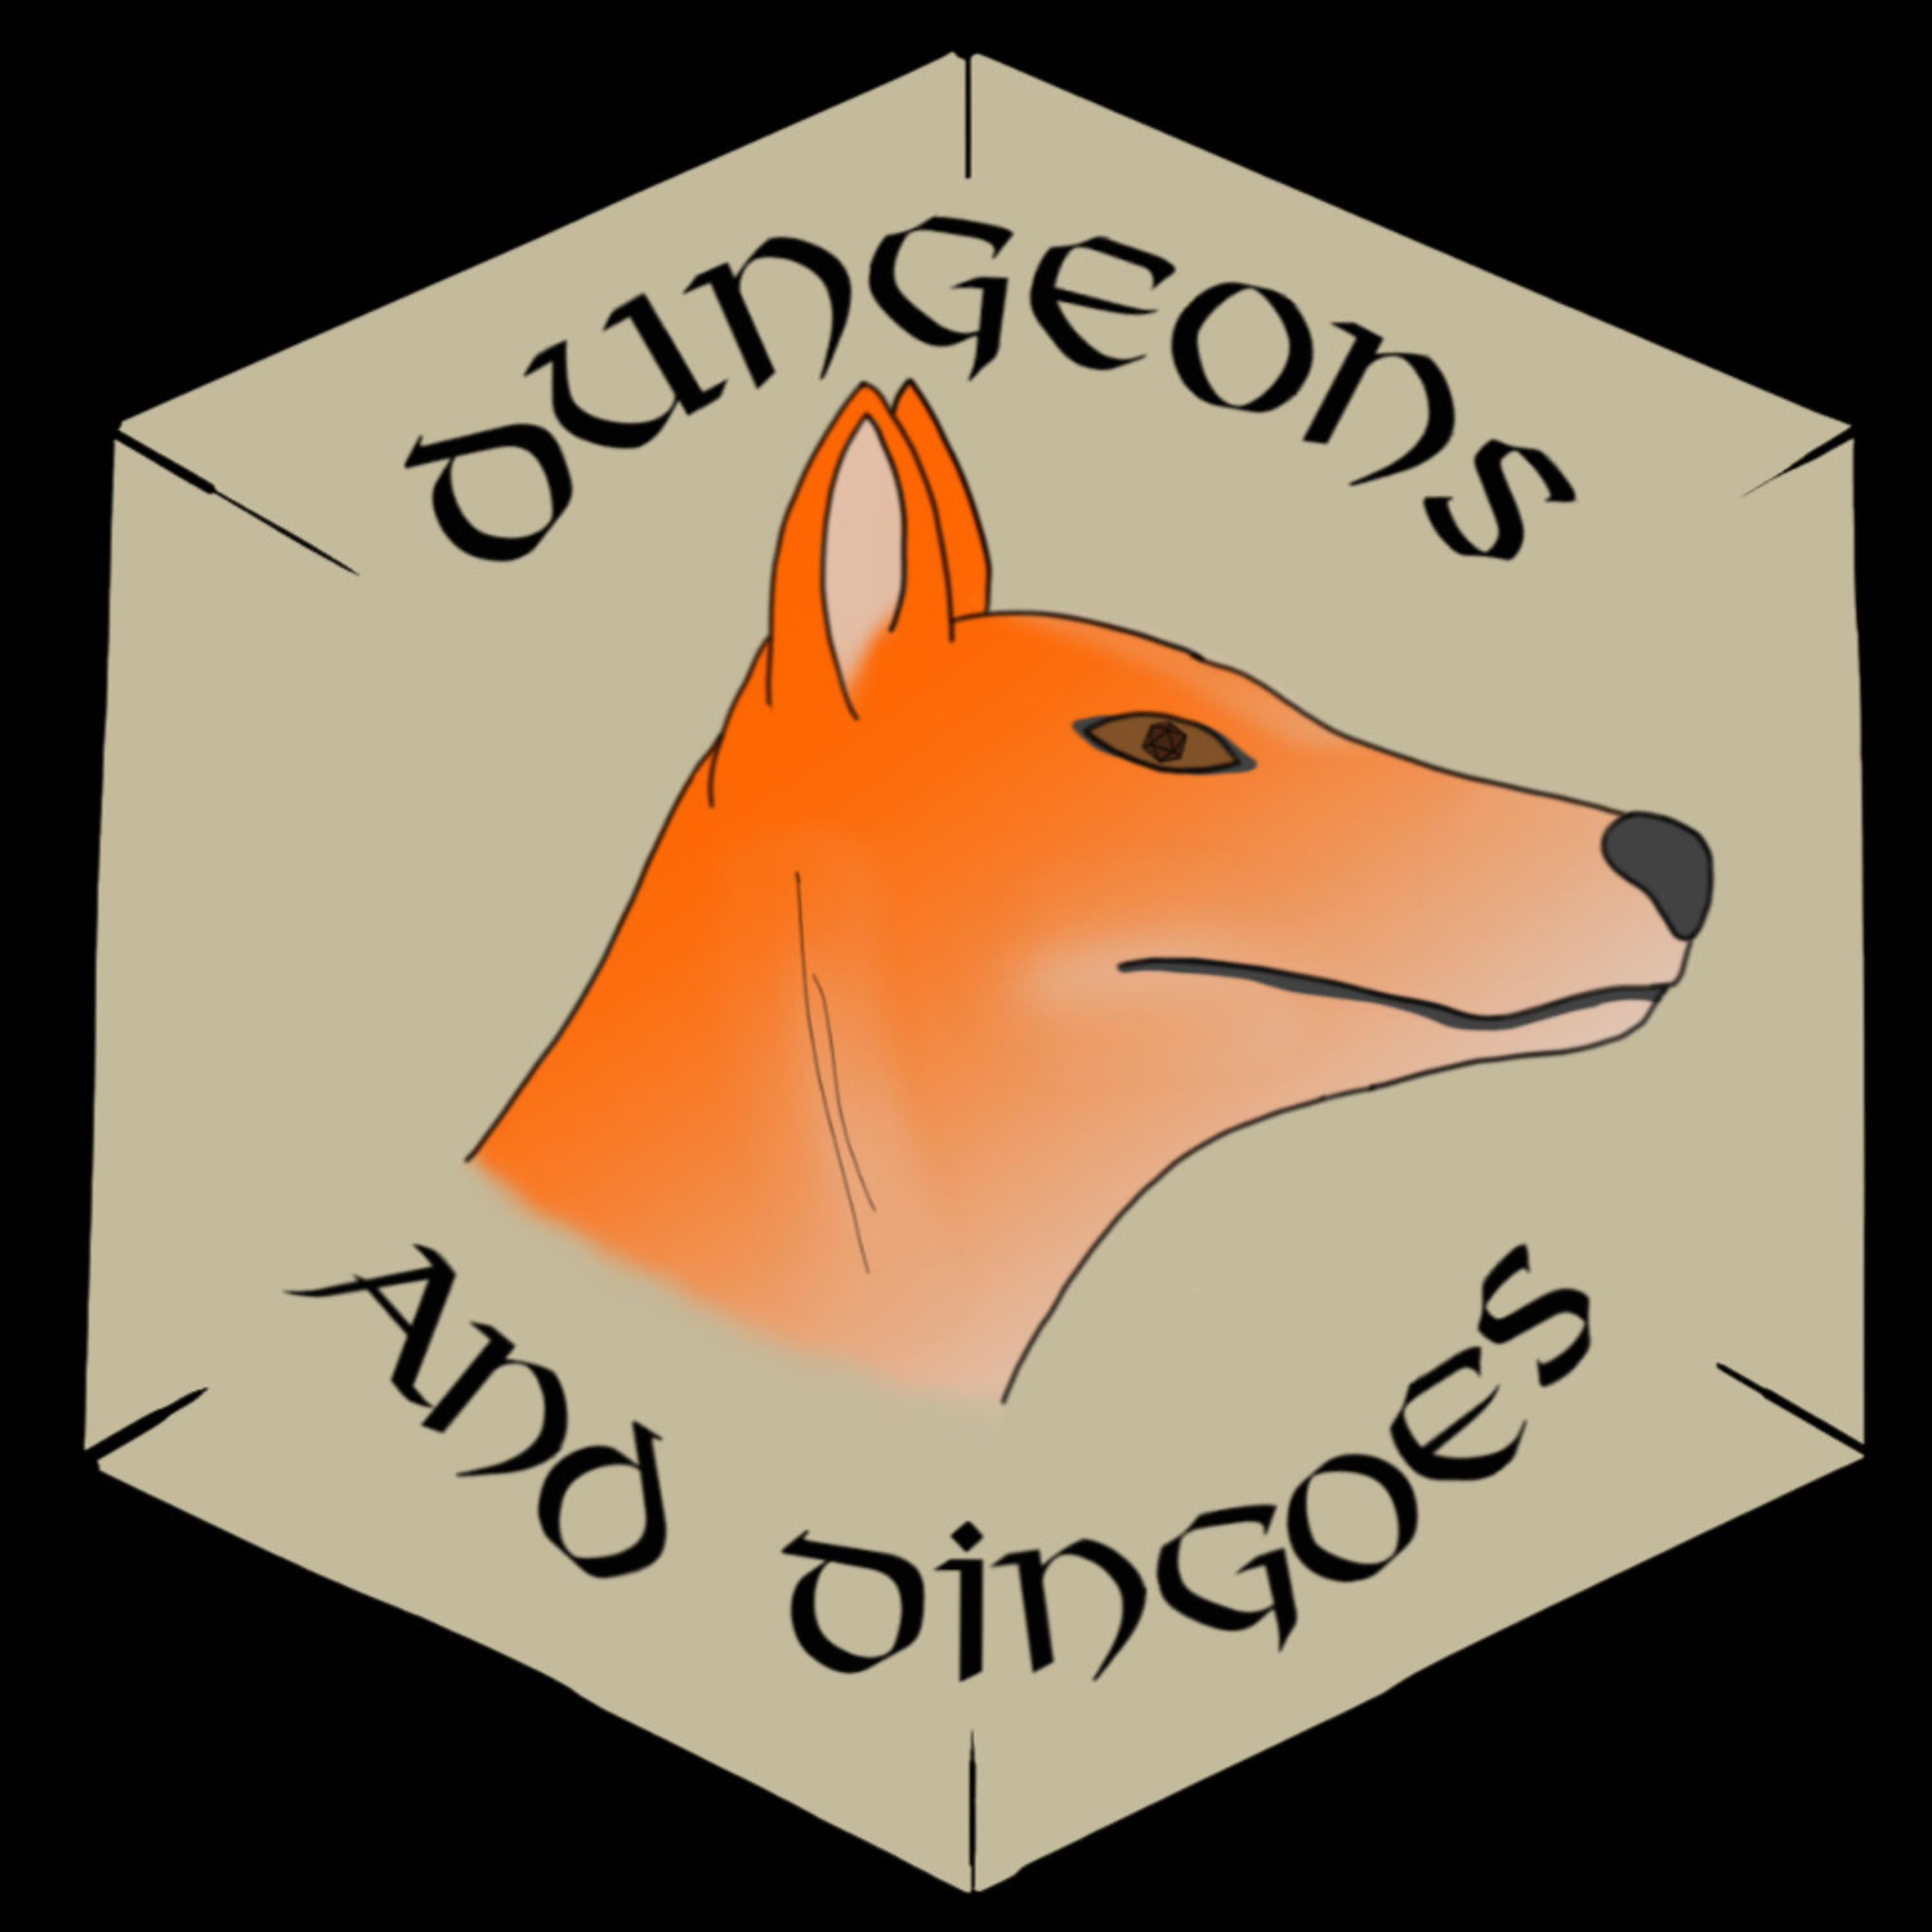 Dungeons and Dingoes